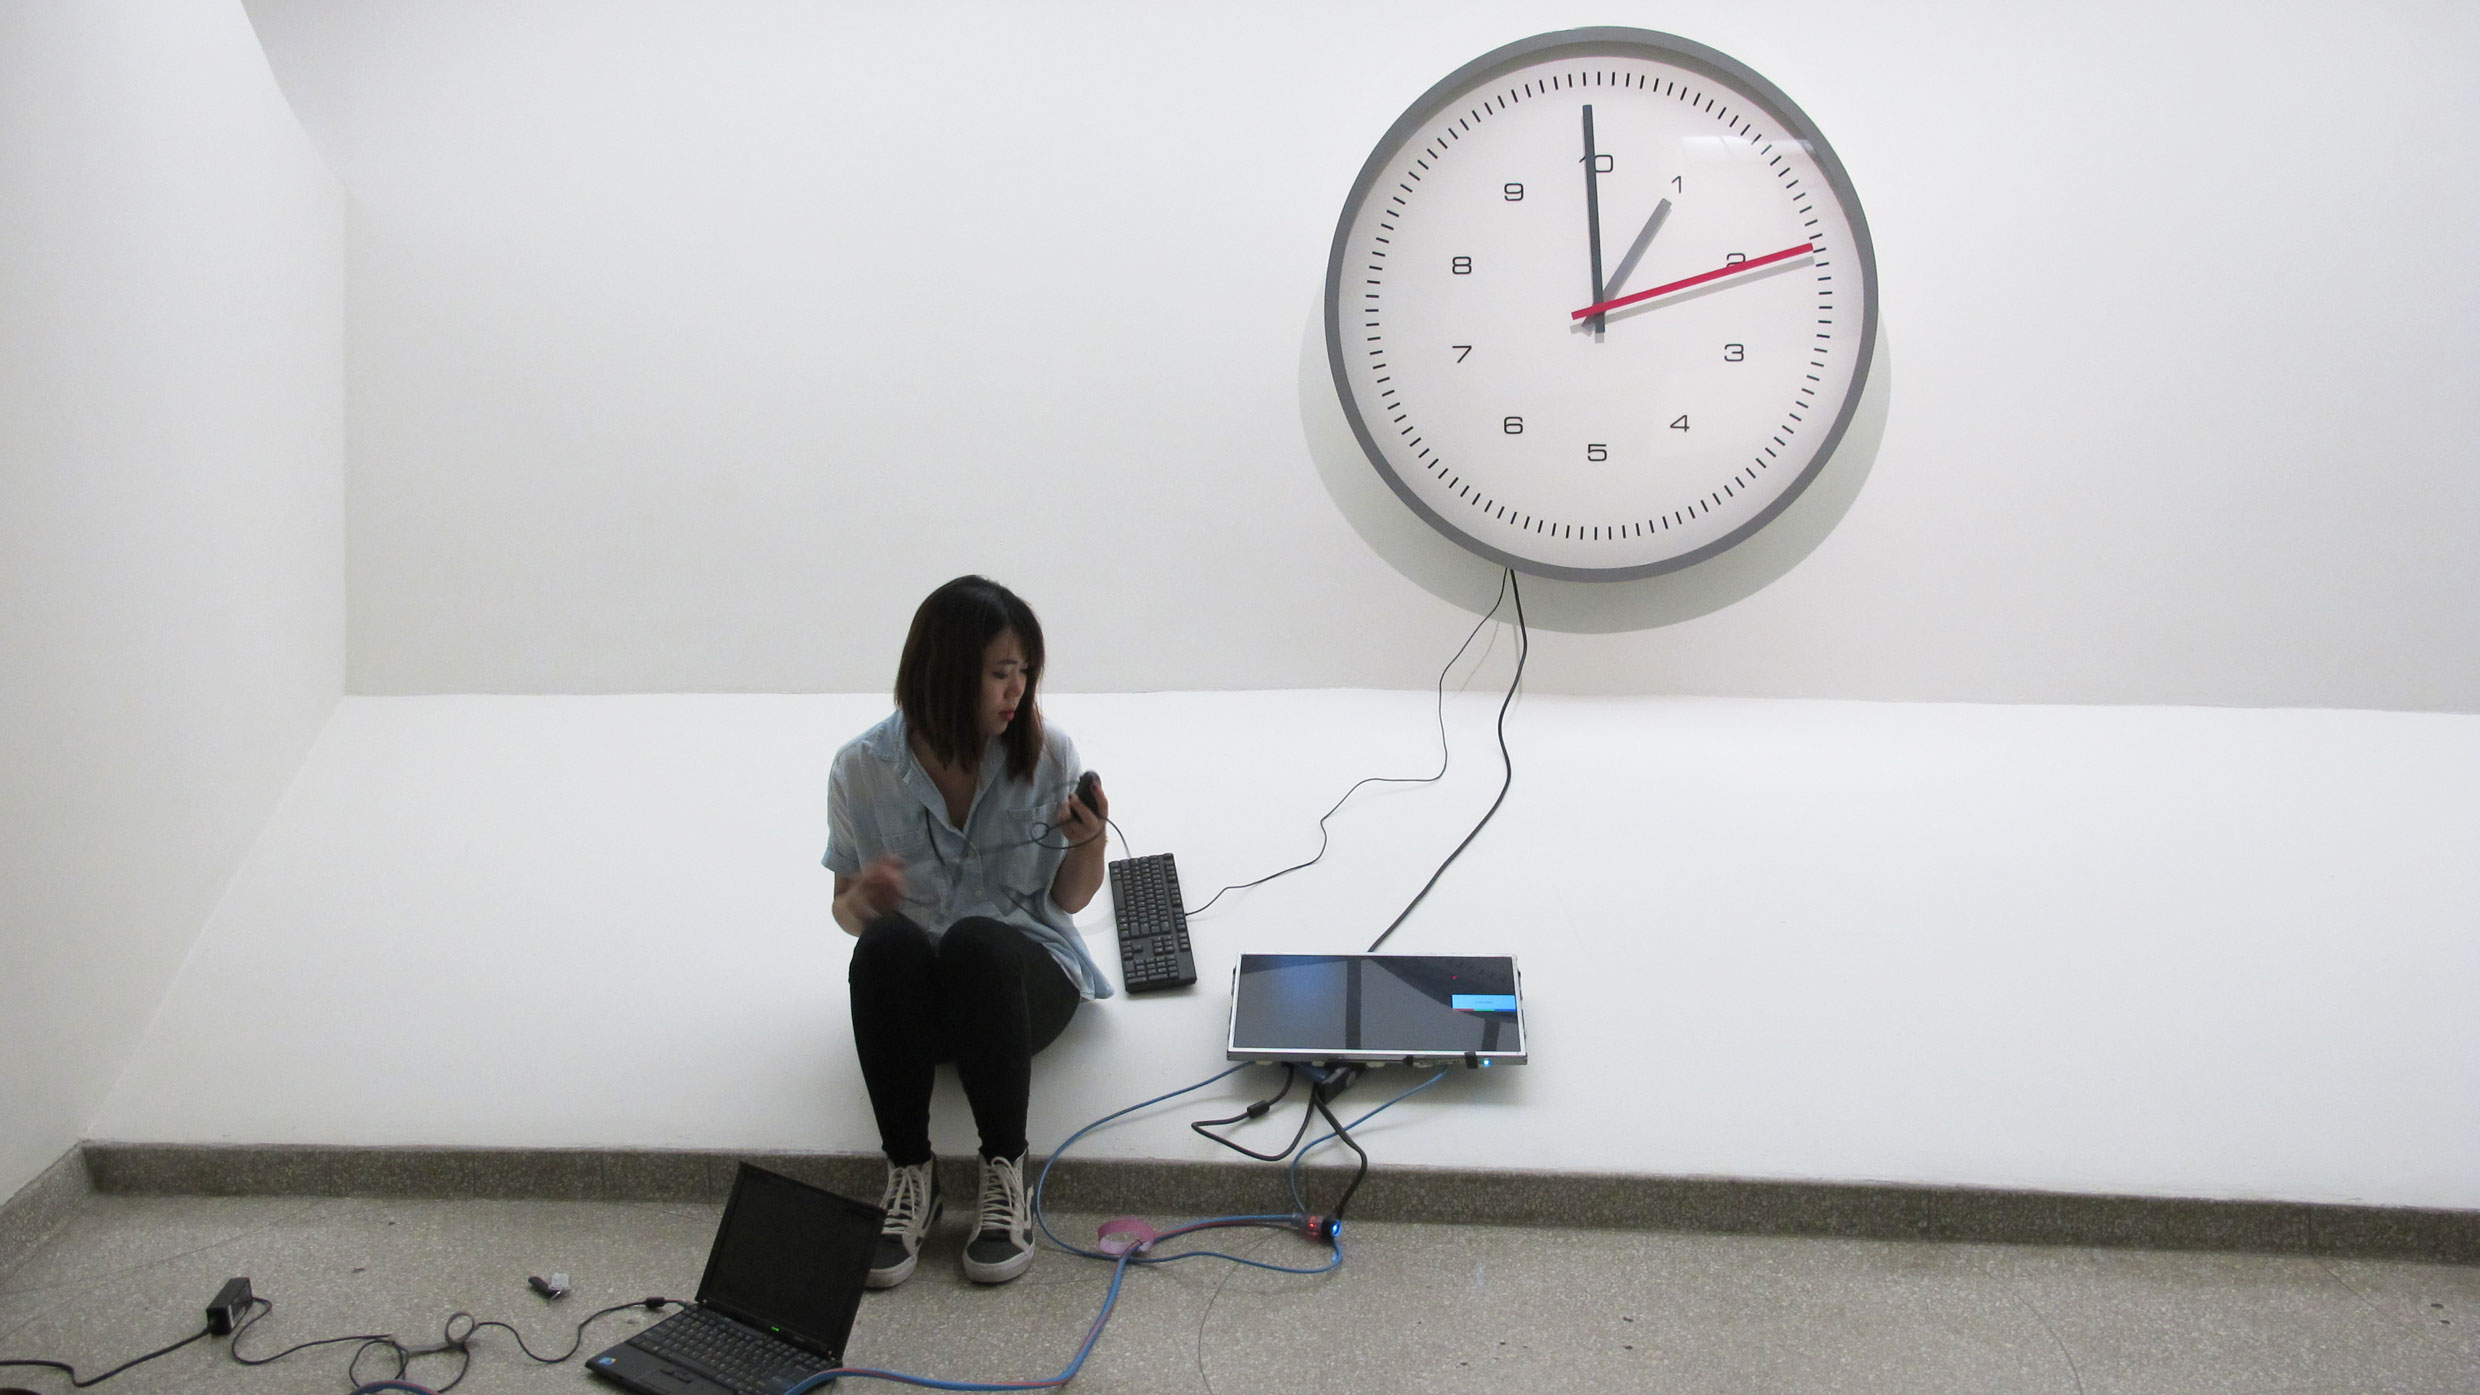 NYU computer science student Jiwon Shin during her summer internship with the Guggenheim Conservation Department. Supervised by Joanna Phillips and mentored by Professor Deena Engel, Jiwon worked on creating an exhibition copy for artist Julieta Aranda's computer-based kinetic object Two shakes, a tick and a jiffy (2007). Photo: Joanna Phillips